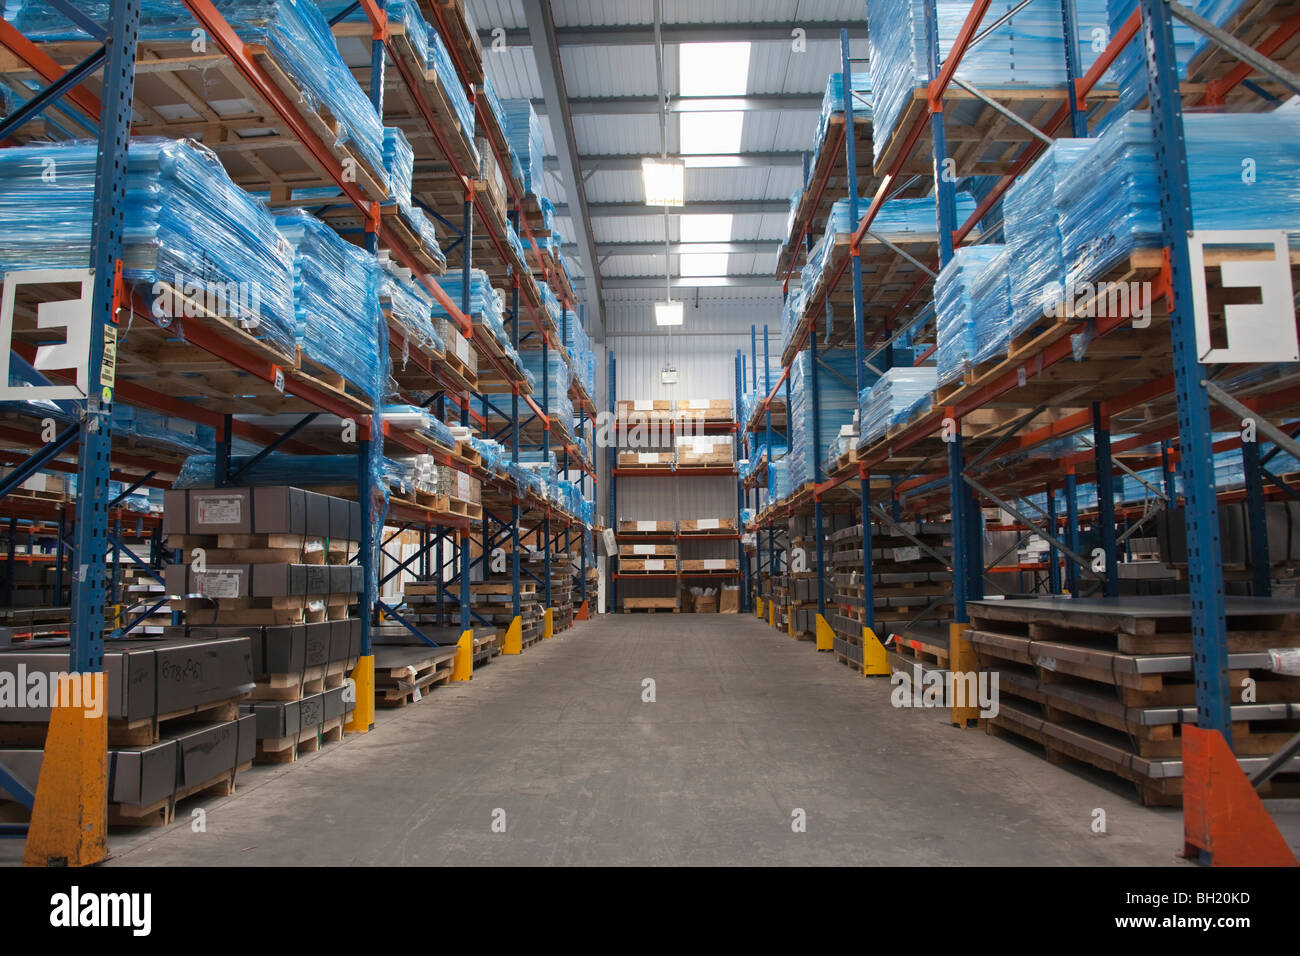 Racking ailse in commercial lighting factory - Stock Image